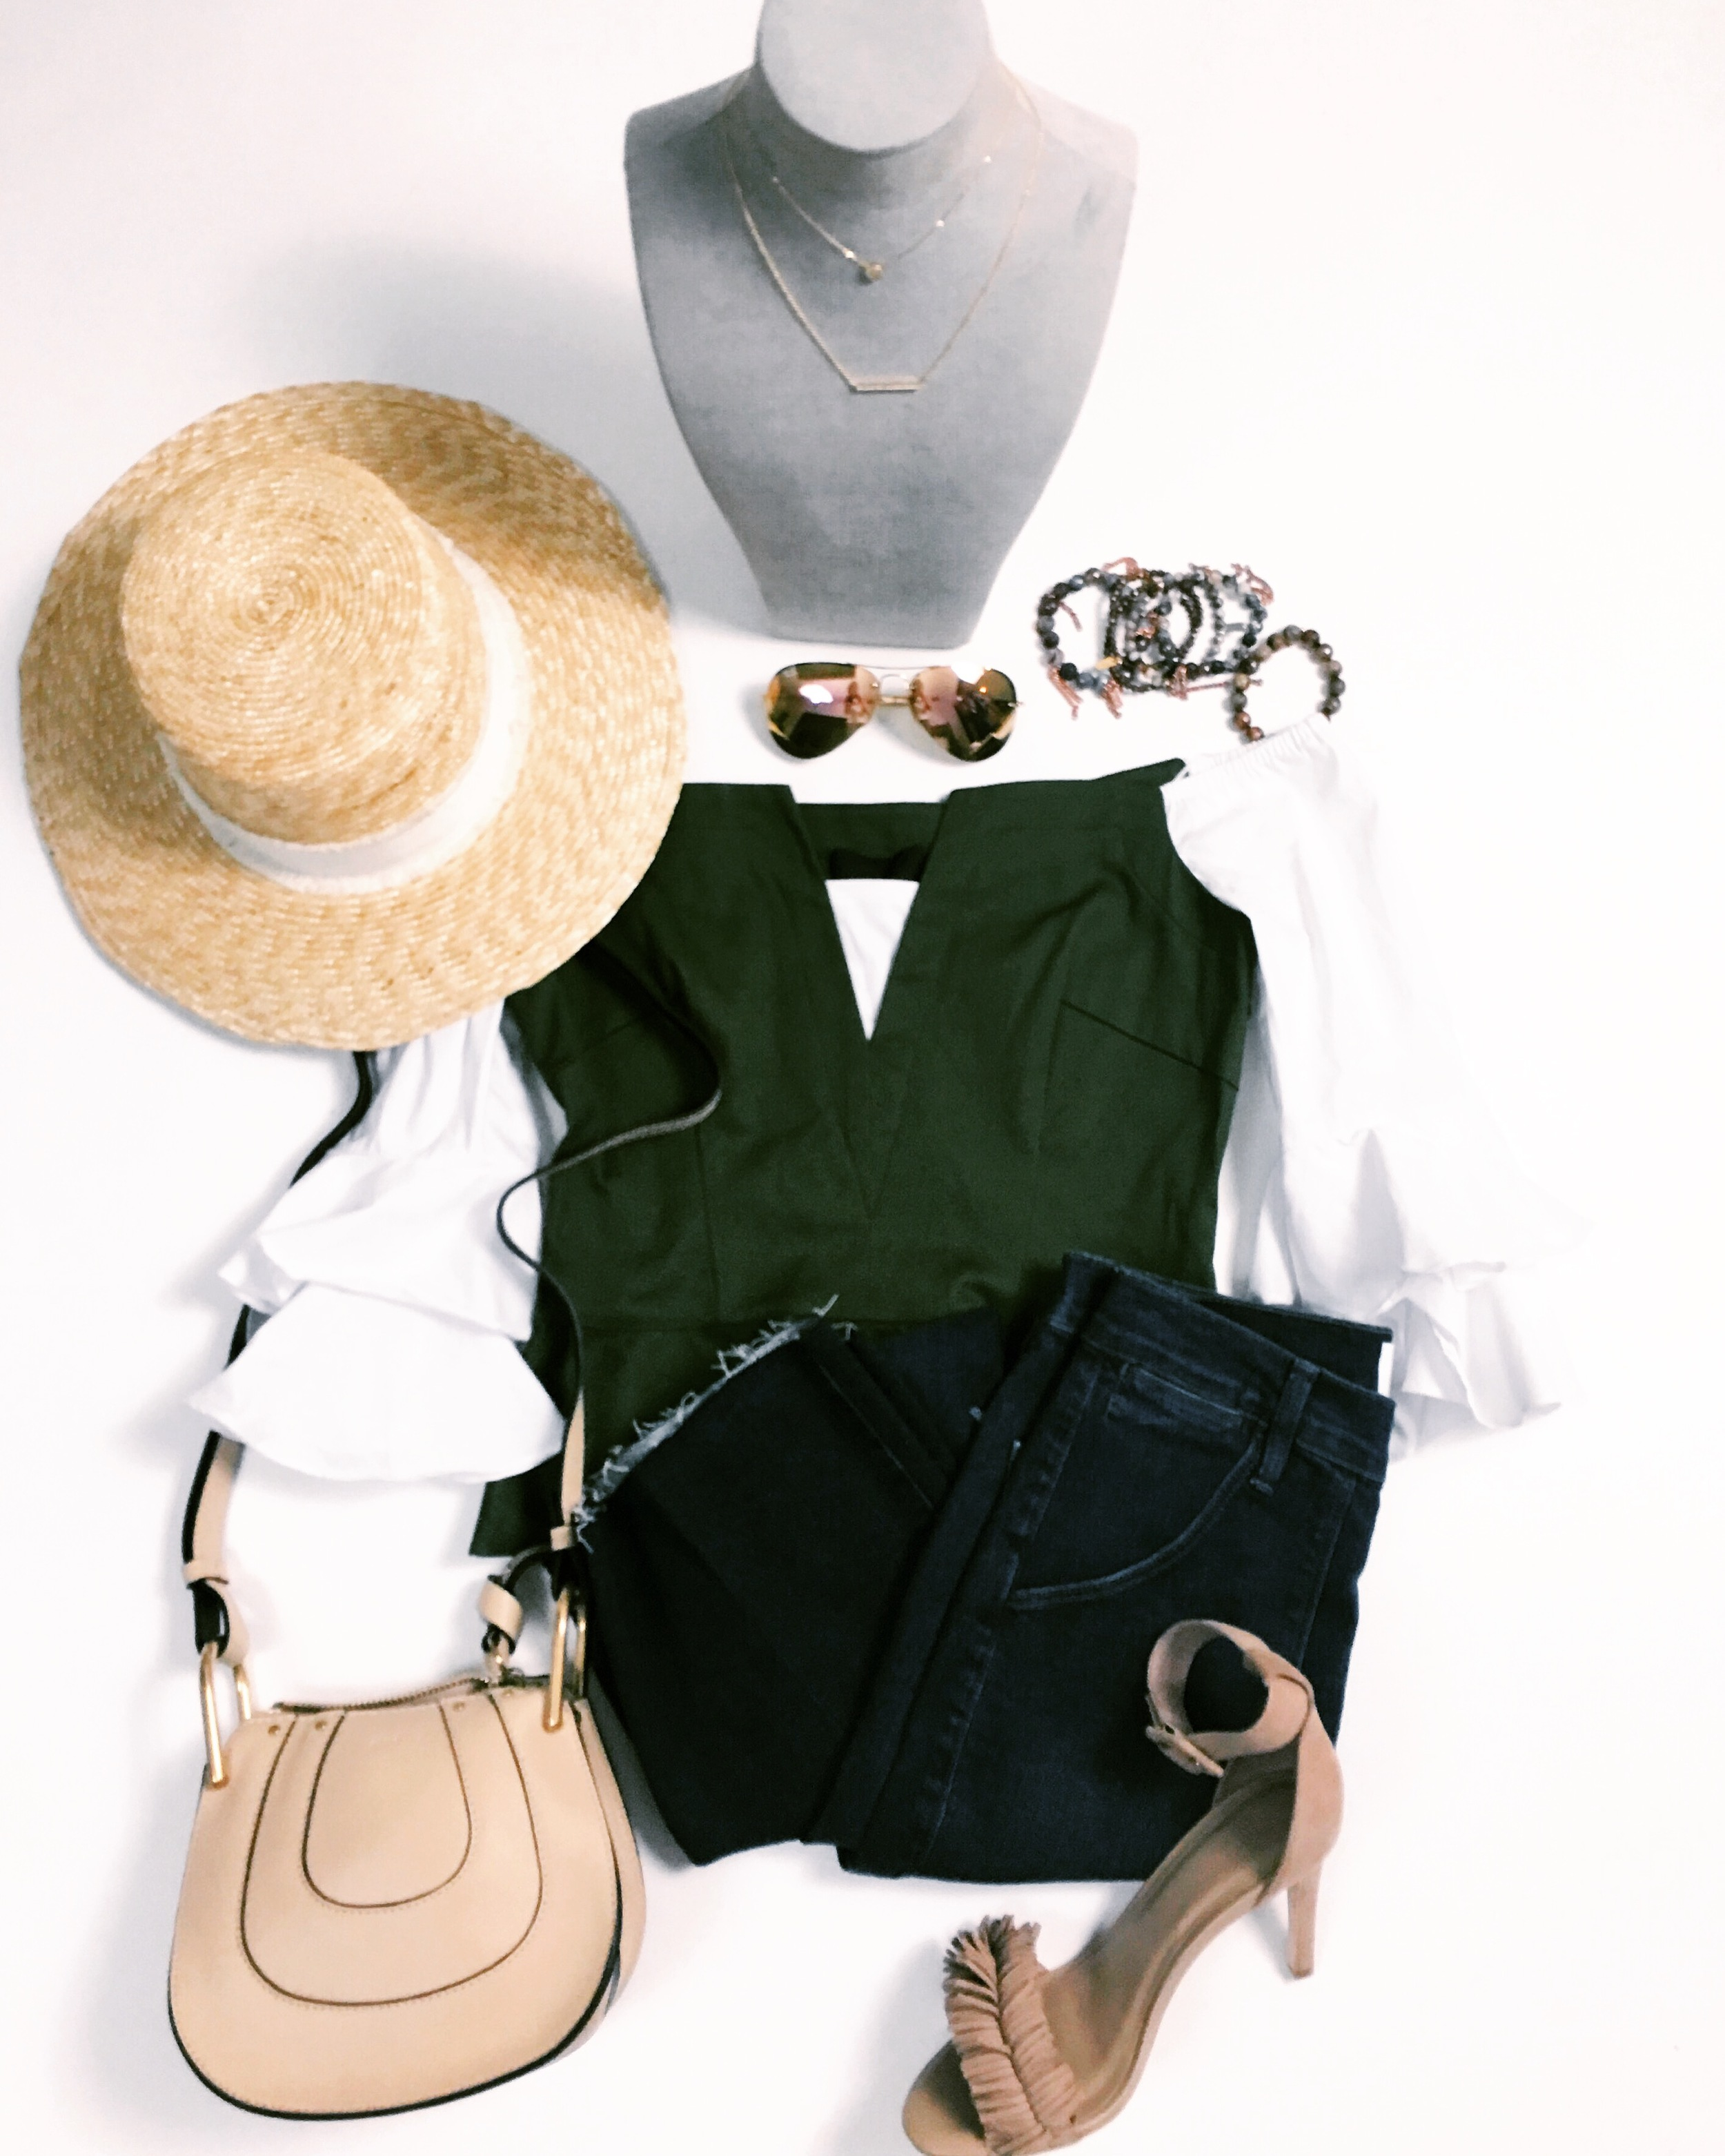 Peplum Shirt by Intermix Jewely by  a.marie  Shoes by Joi from Nordstrom Bag by Chloe Hat by Rag and Bone